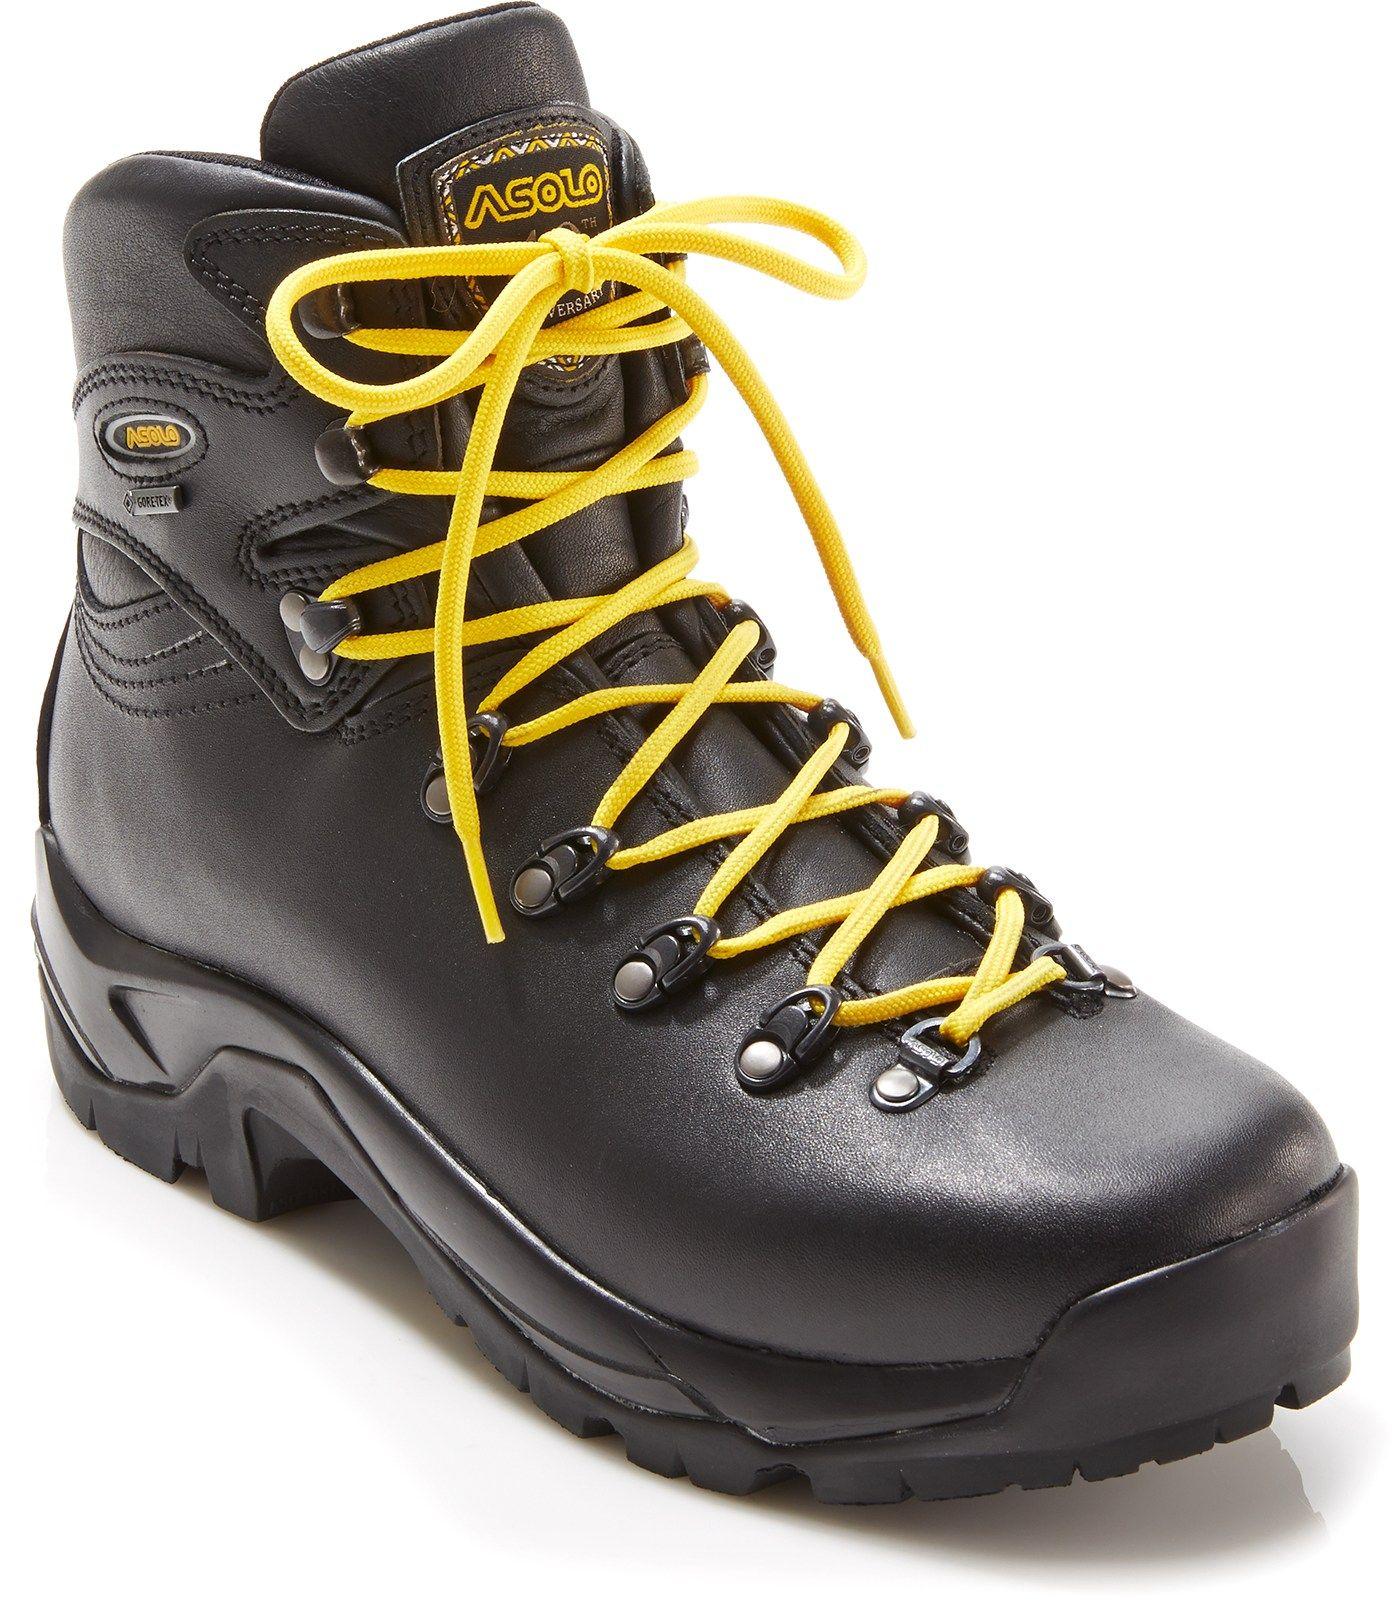 1a574764074 Asolo TPS 520 GTX Anniversary Hiking Boots - Men's | REI Co-op ...